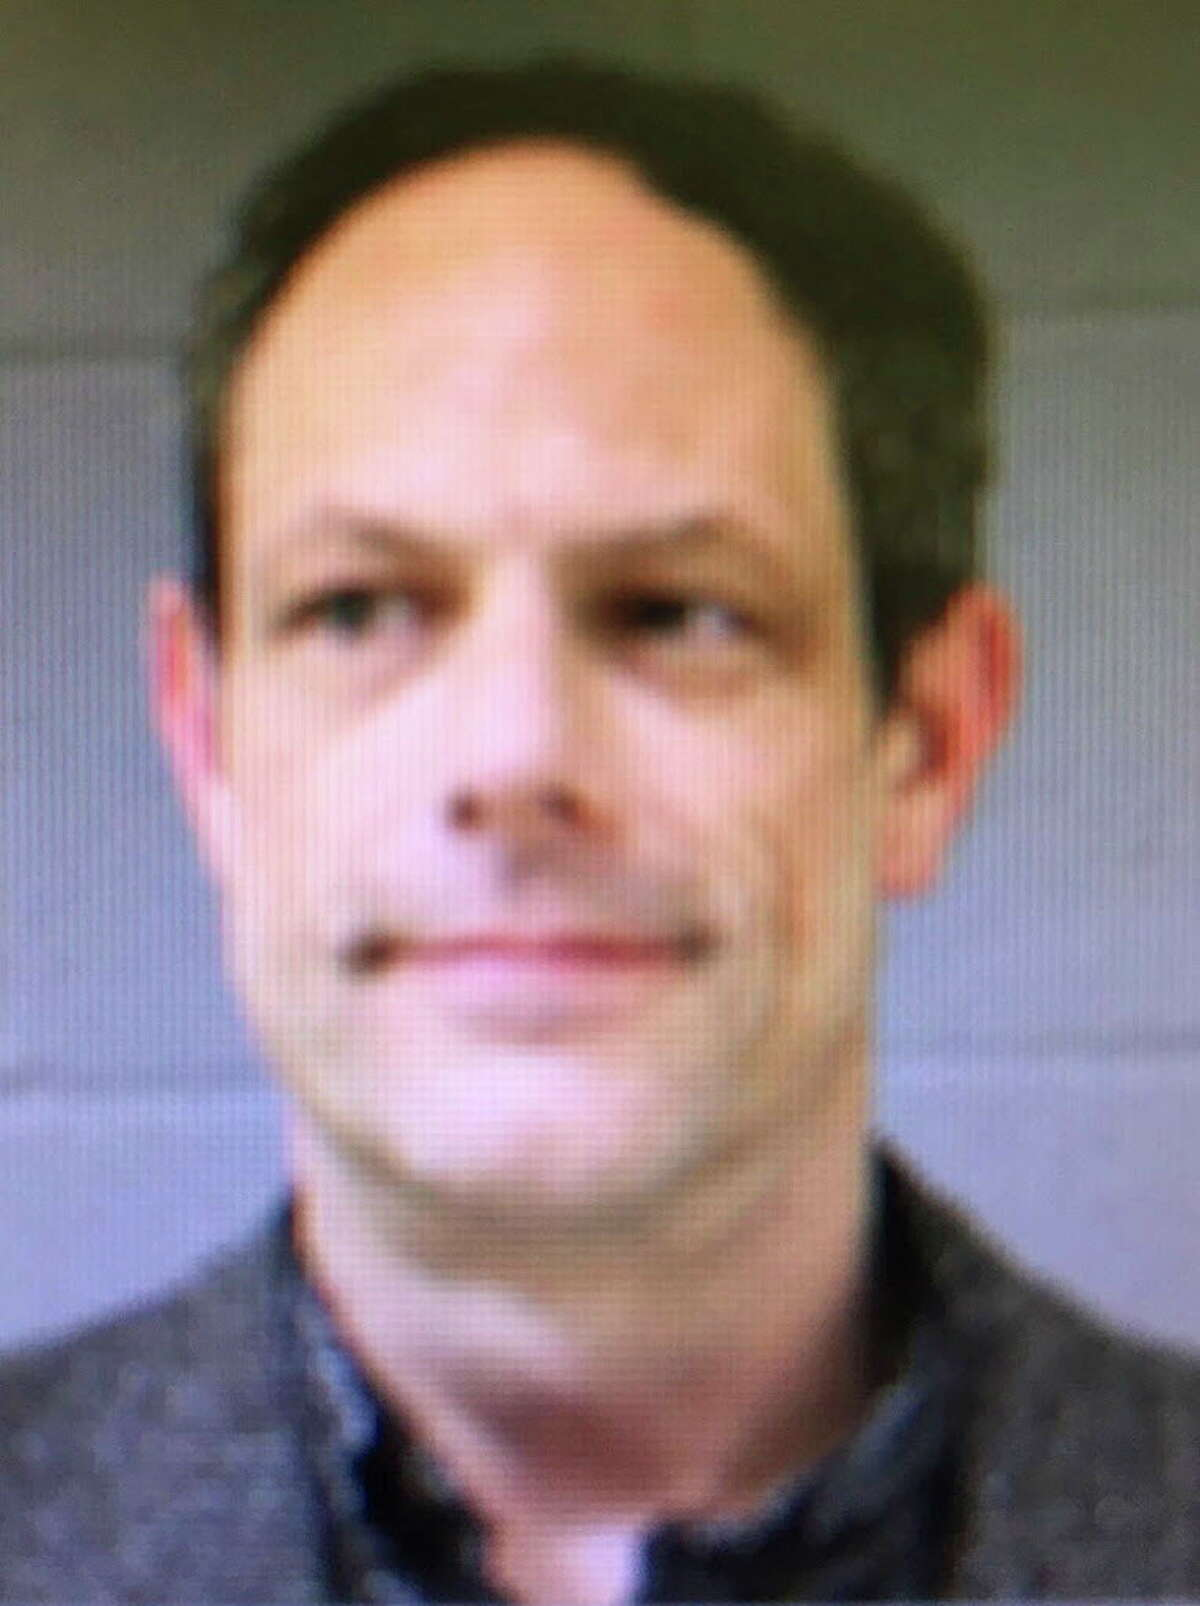 FILE - This booking photo released by the Newtown Police Department shows Jason Adams, arrested Wednesday, April 6, 2016, and charged with having a gun at the town's middle school. Adams, 46, a teacher at the school, was charged with possession of a weapon on school grounds, which is illegal in Connecticut. Newtown School Superintendent Joseph Erardi confirmed Saturday, July 2, that Adams resigned at the end of the school year. (Newtown Police Department via AP)